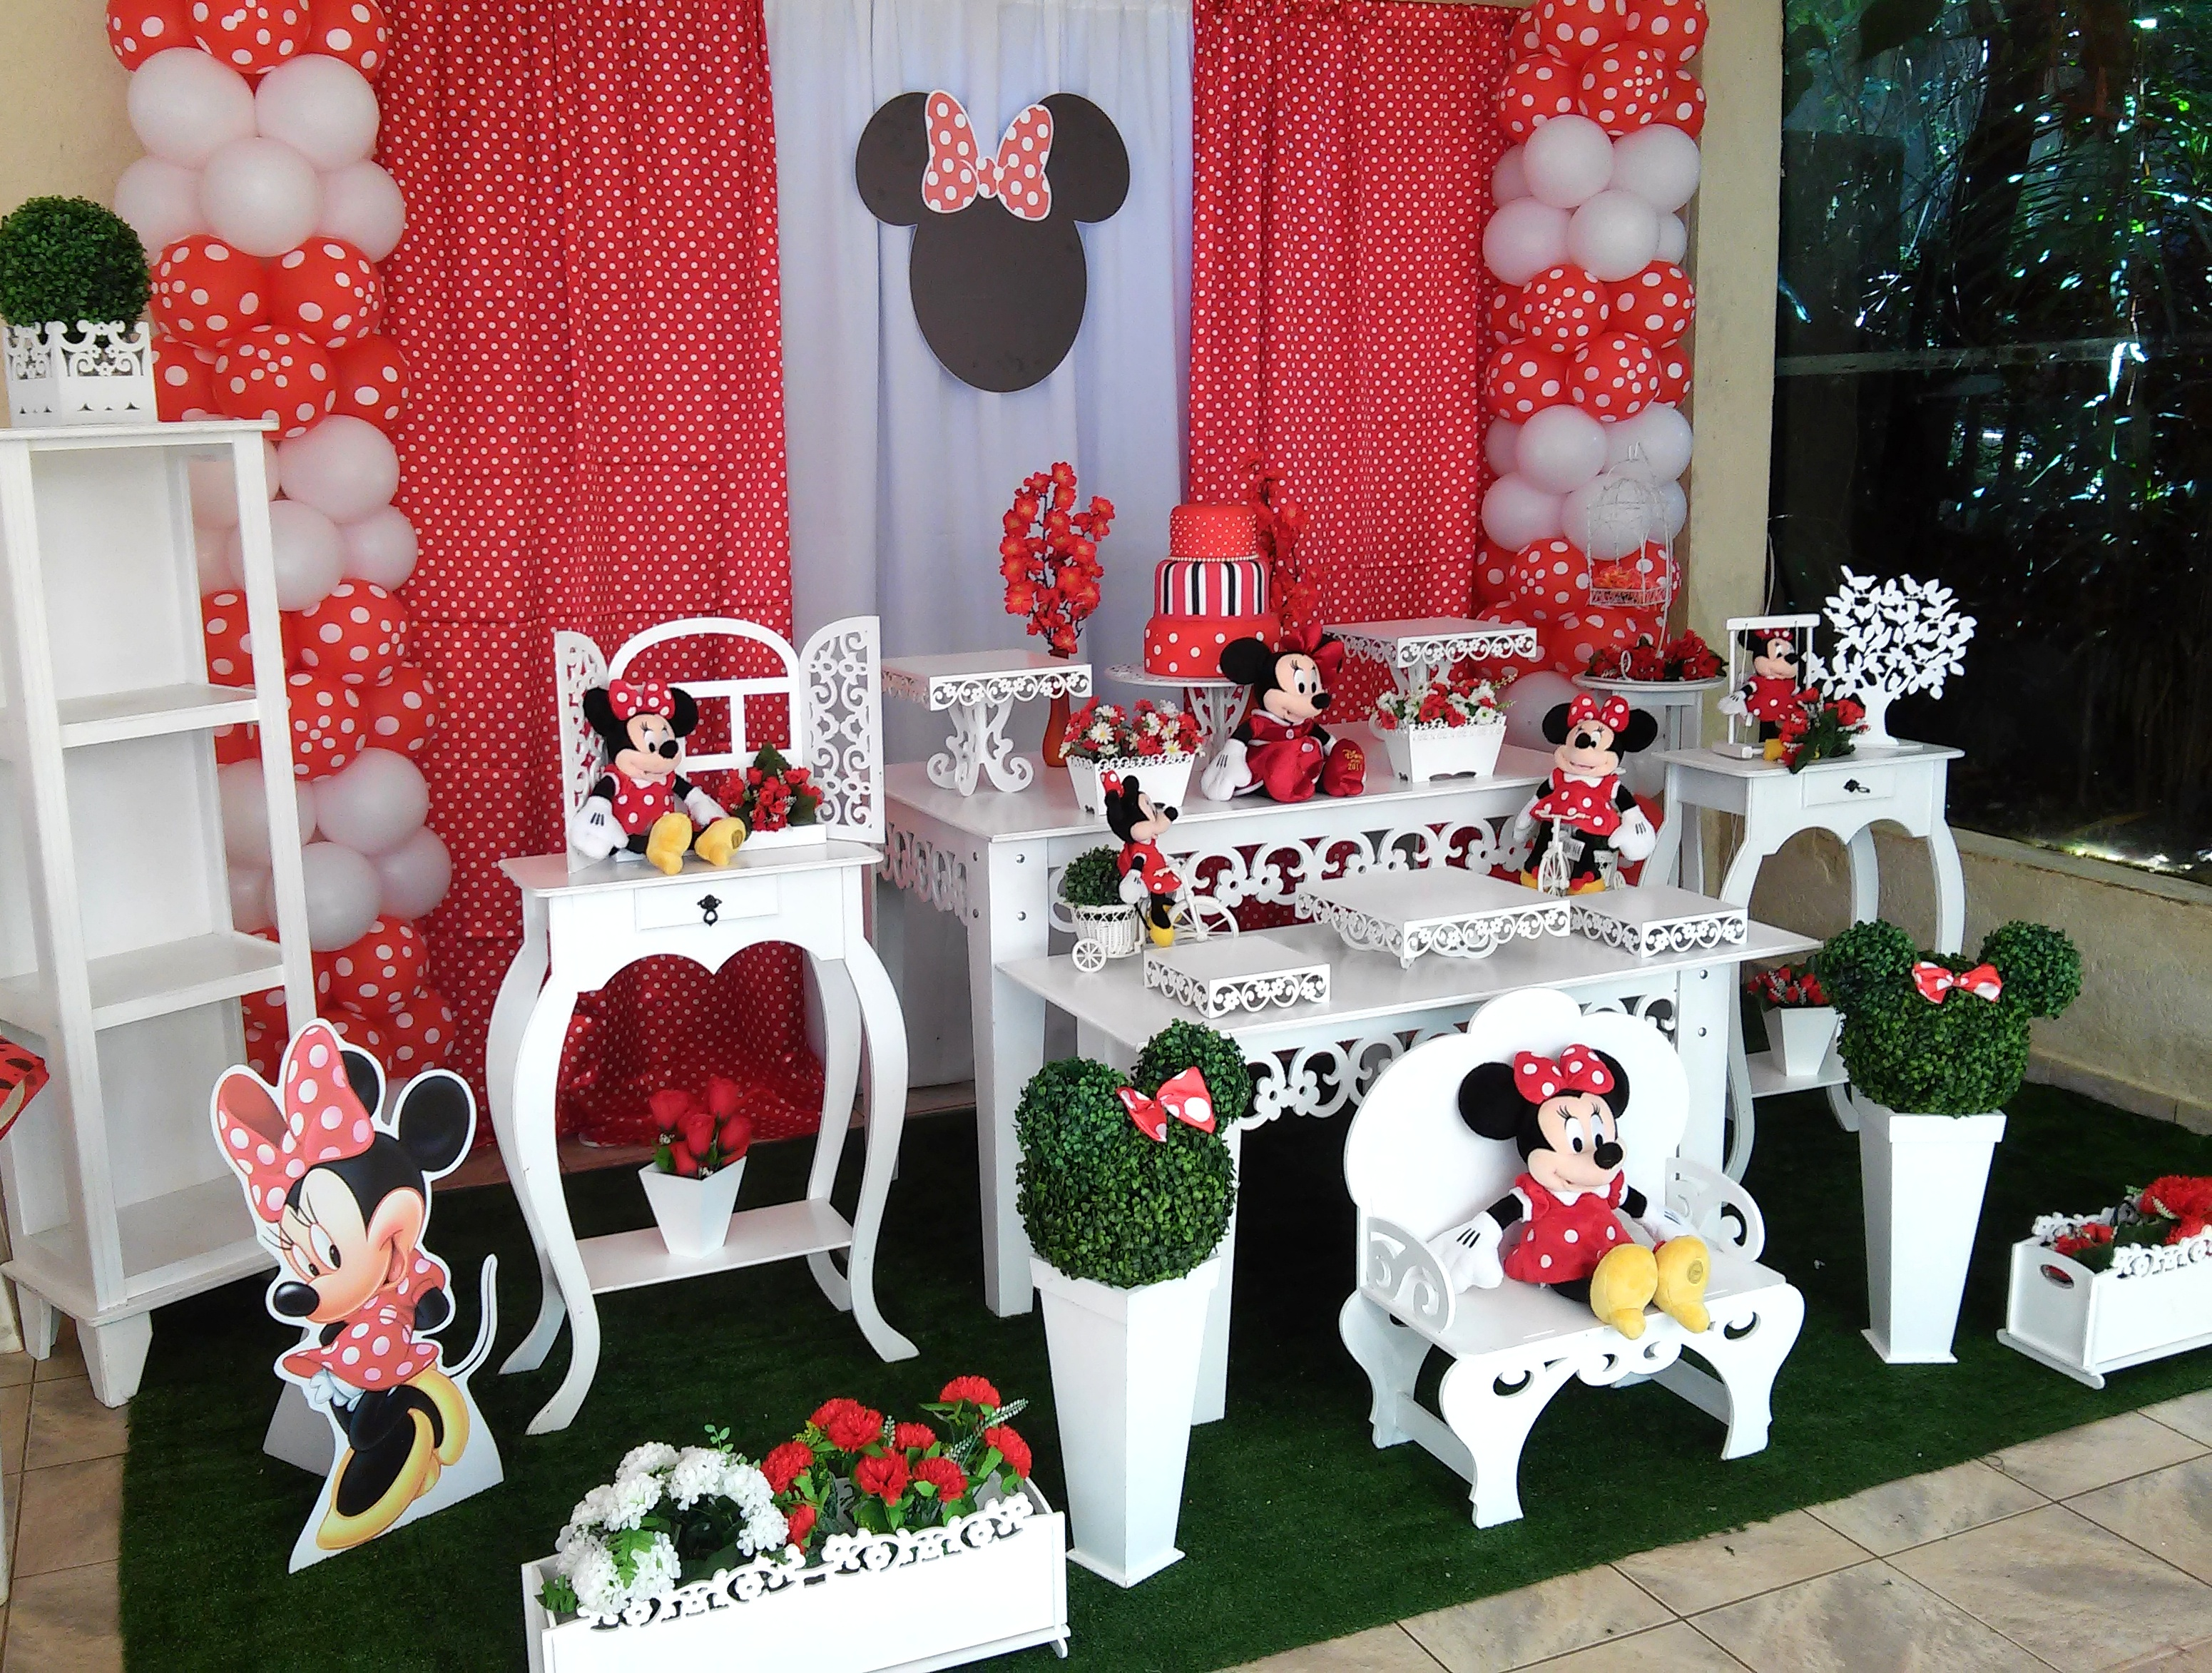 minnie decoracao provencal minnie vermelha minnie vermelha decoracao